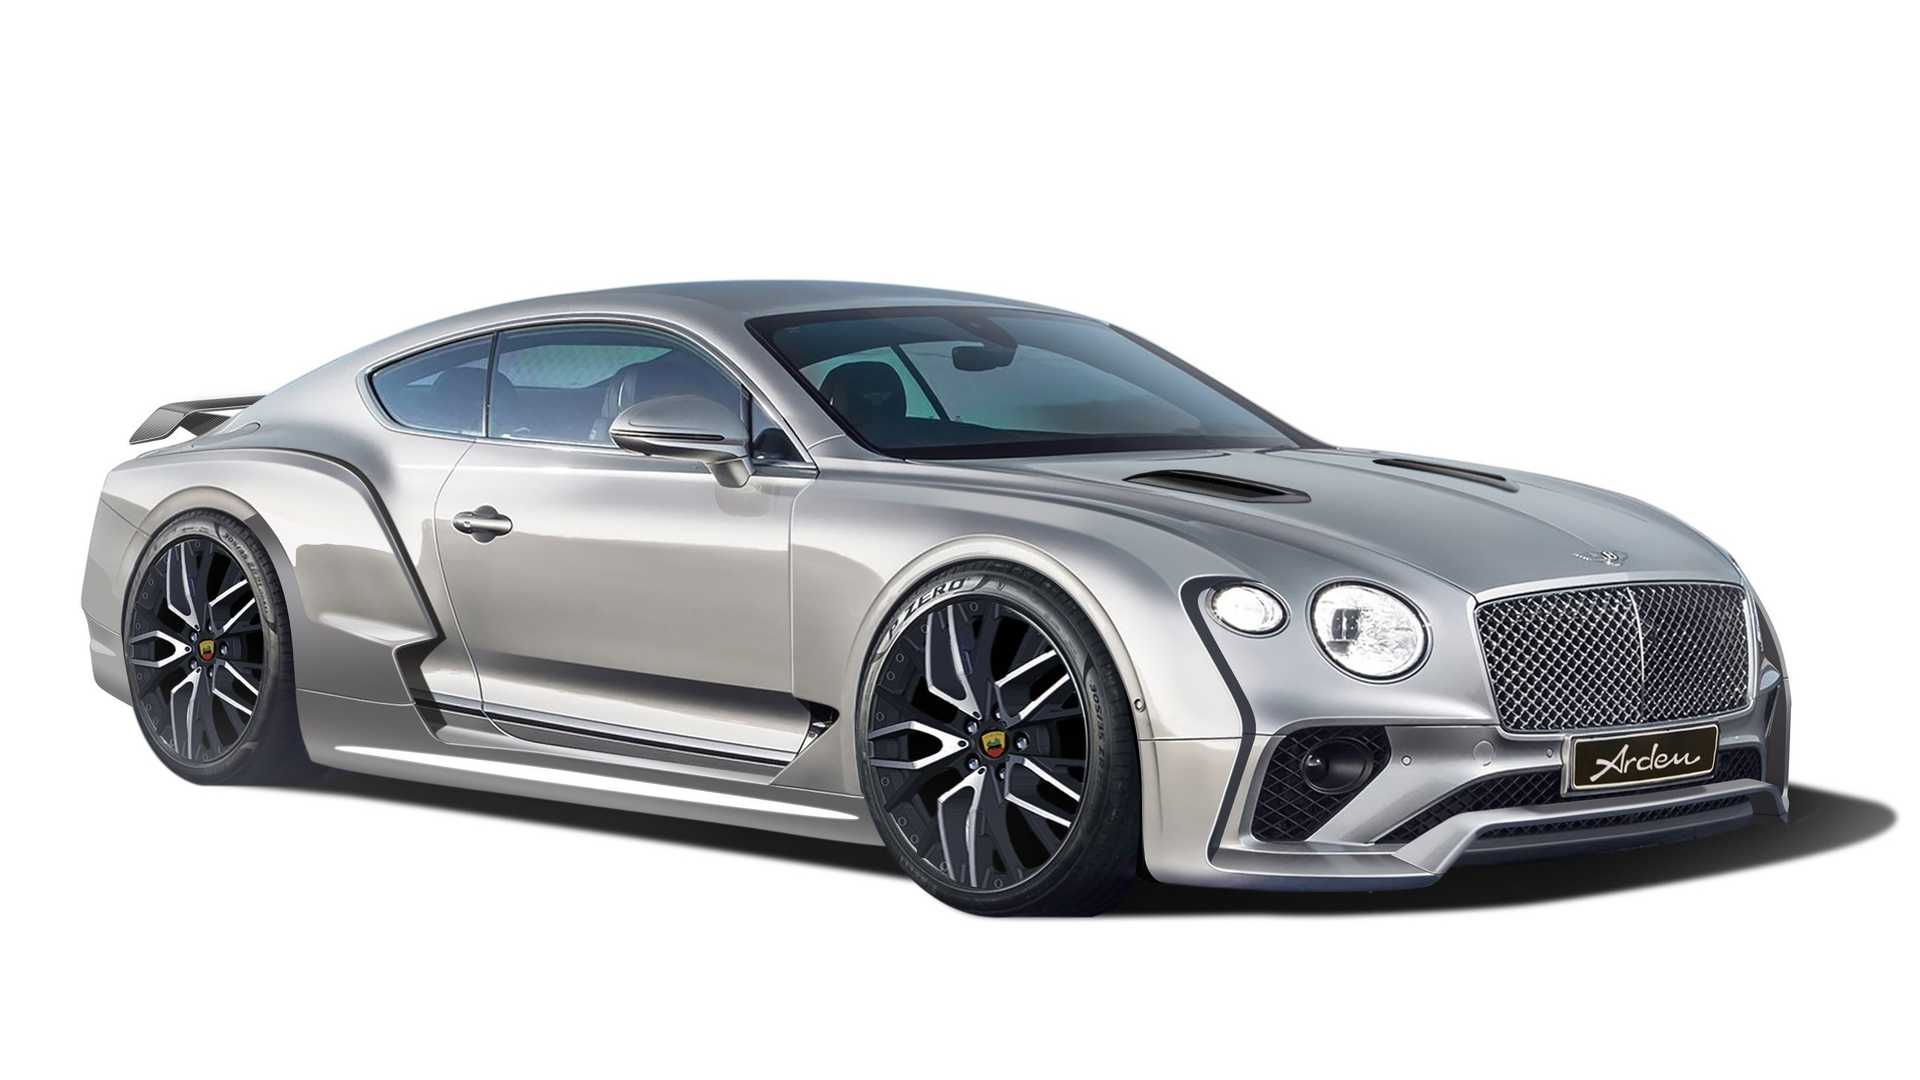 Arden Bentley Ab Iii Gives Widebody Swagger To The Continental Gt